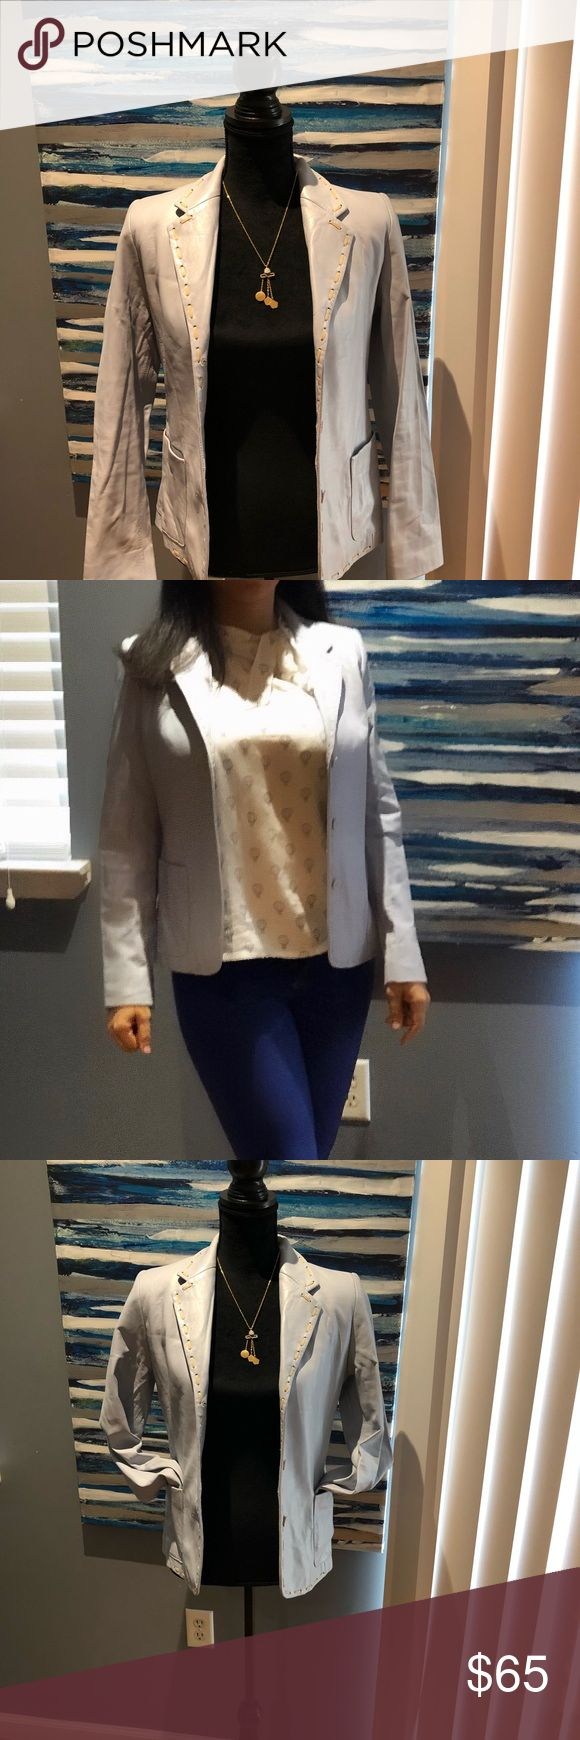 """Leather Jacket size 6 💯 % Leather Jacket by identify Brand New. Originally cost 350.00. Made in Canada 🇨🇦 this Jacket feature 3 front button 2 front pocket and lining inside. Soft leather light blue/grey. Sleeves measure 24"""" from the shoulder waist measure 15 1/2"""" and length from neck to bottom25"""". Very nice Jacket. Jackets & Coats"""